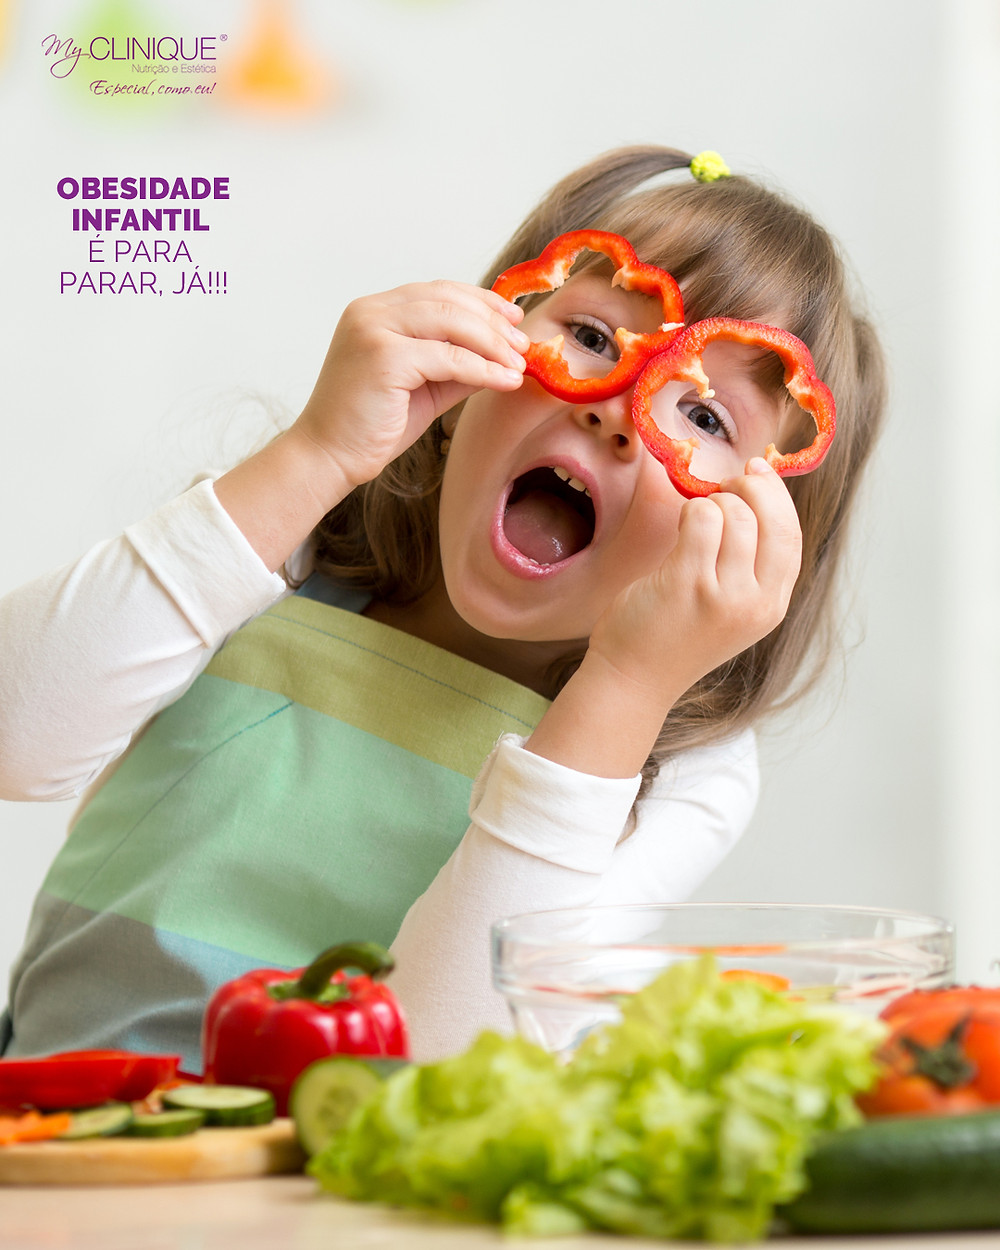 myclinique obesidade infantil